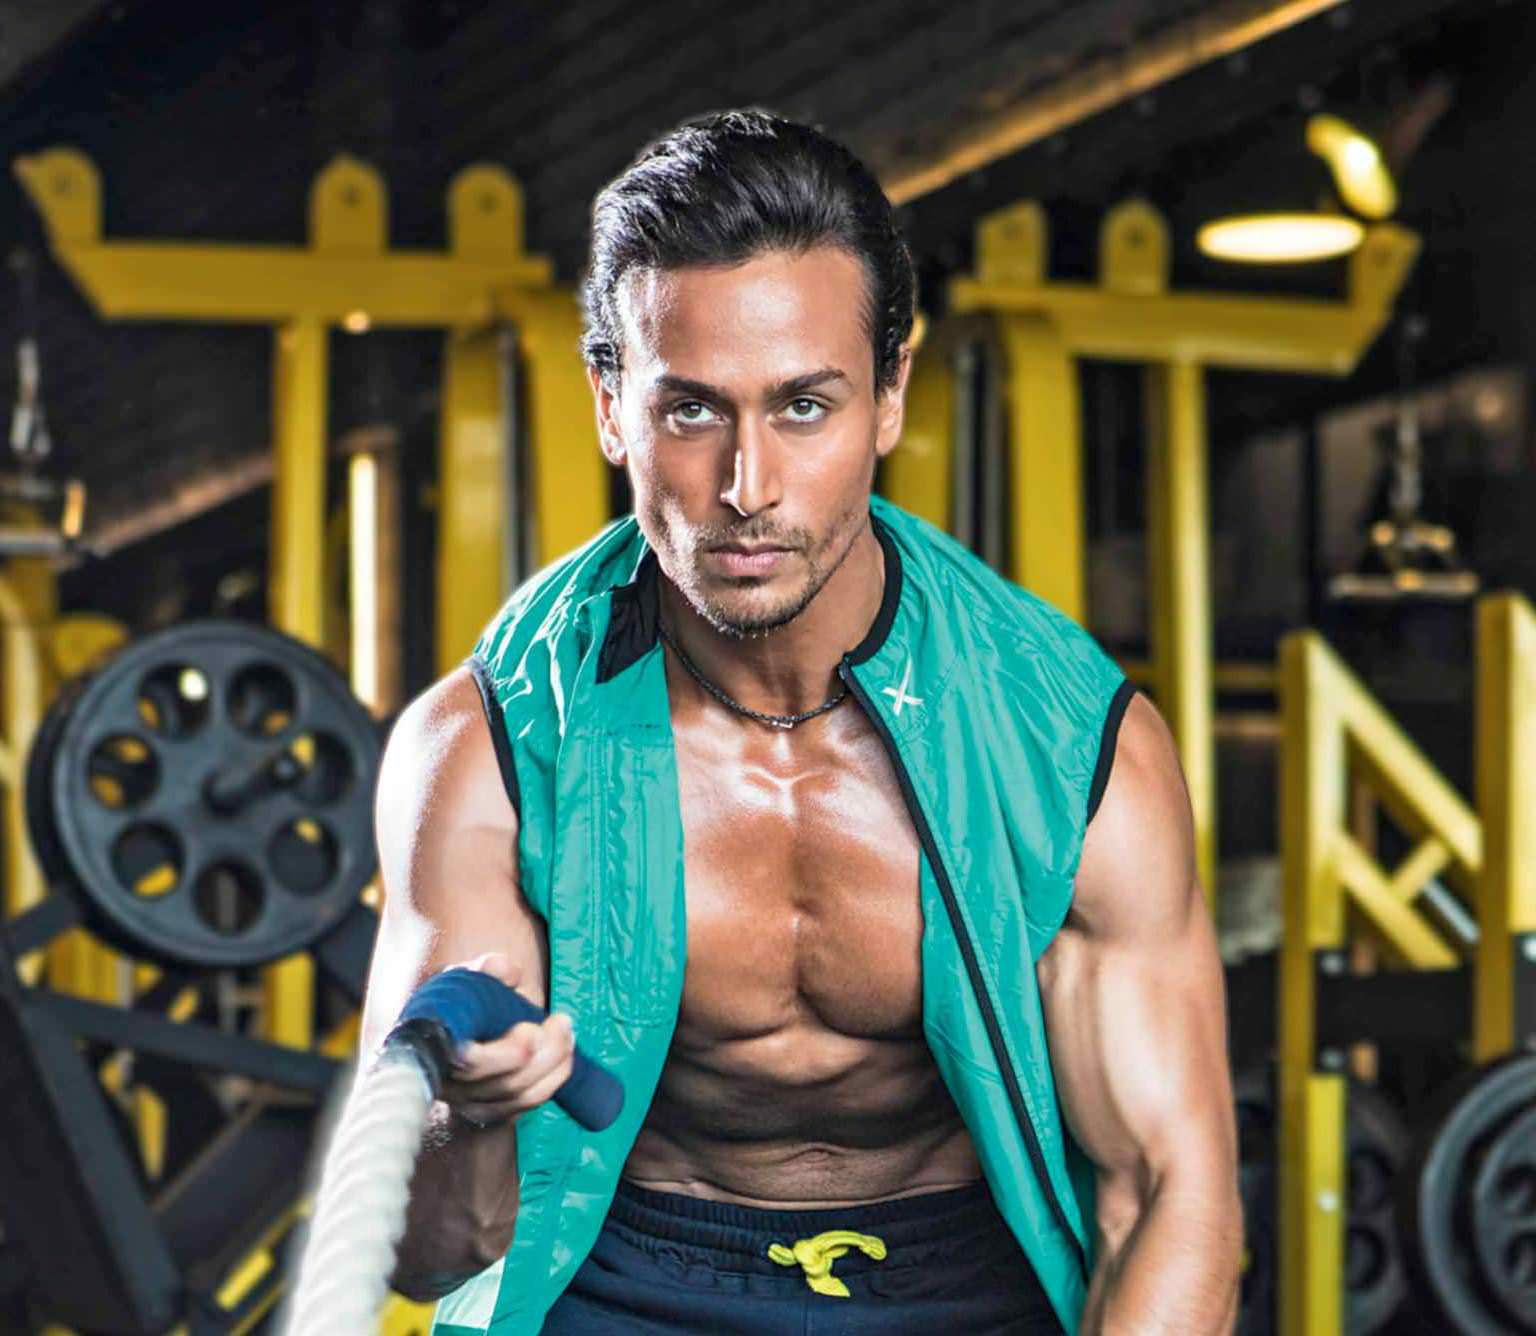 new bollywood actor tiger shroff hd wallpaper image and pictures